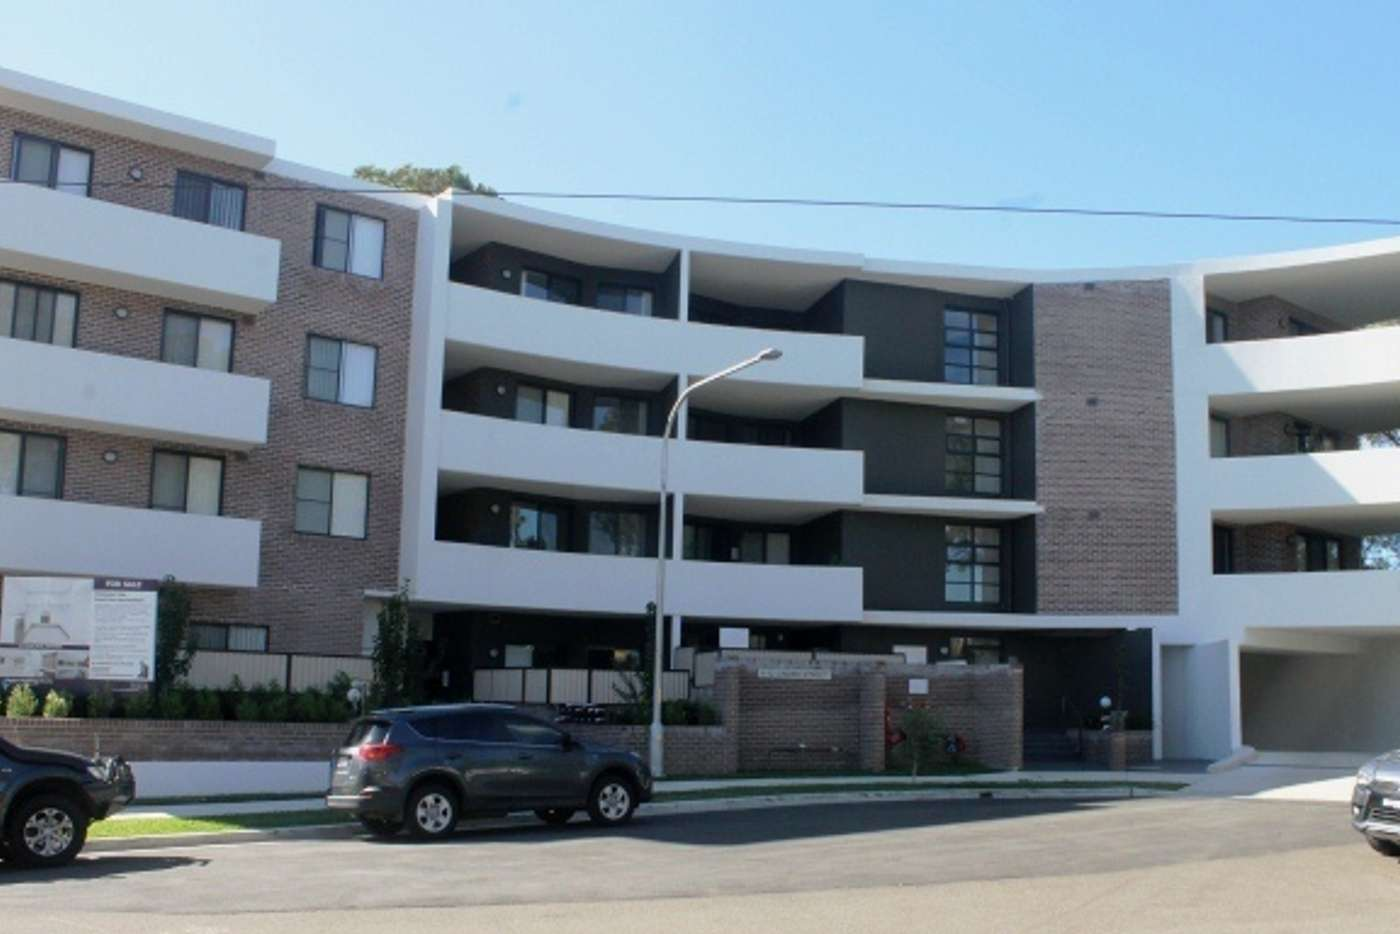 Main view of Homely unit listing, 15/8-12 Linden Street, Toongabbie NSW 2146